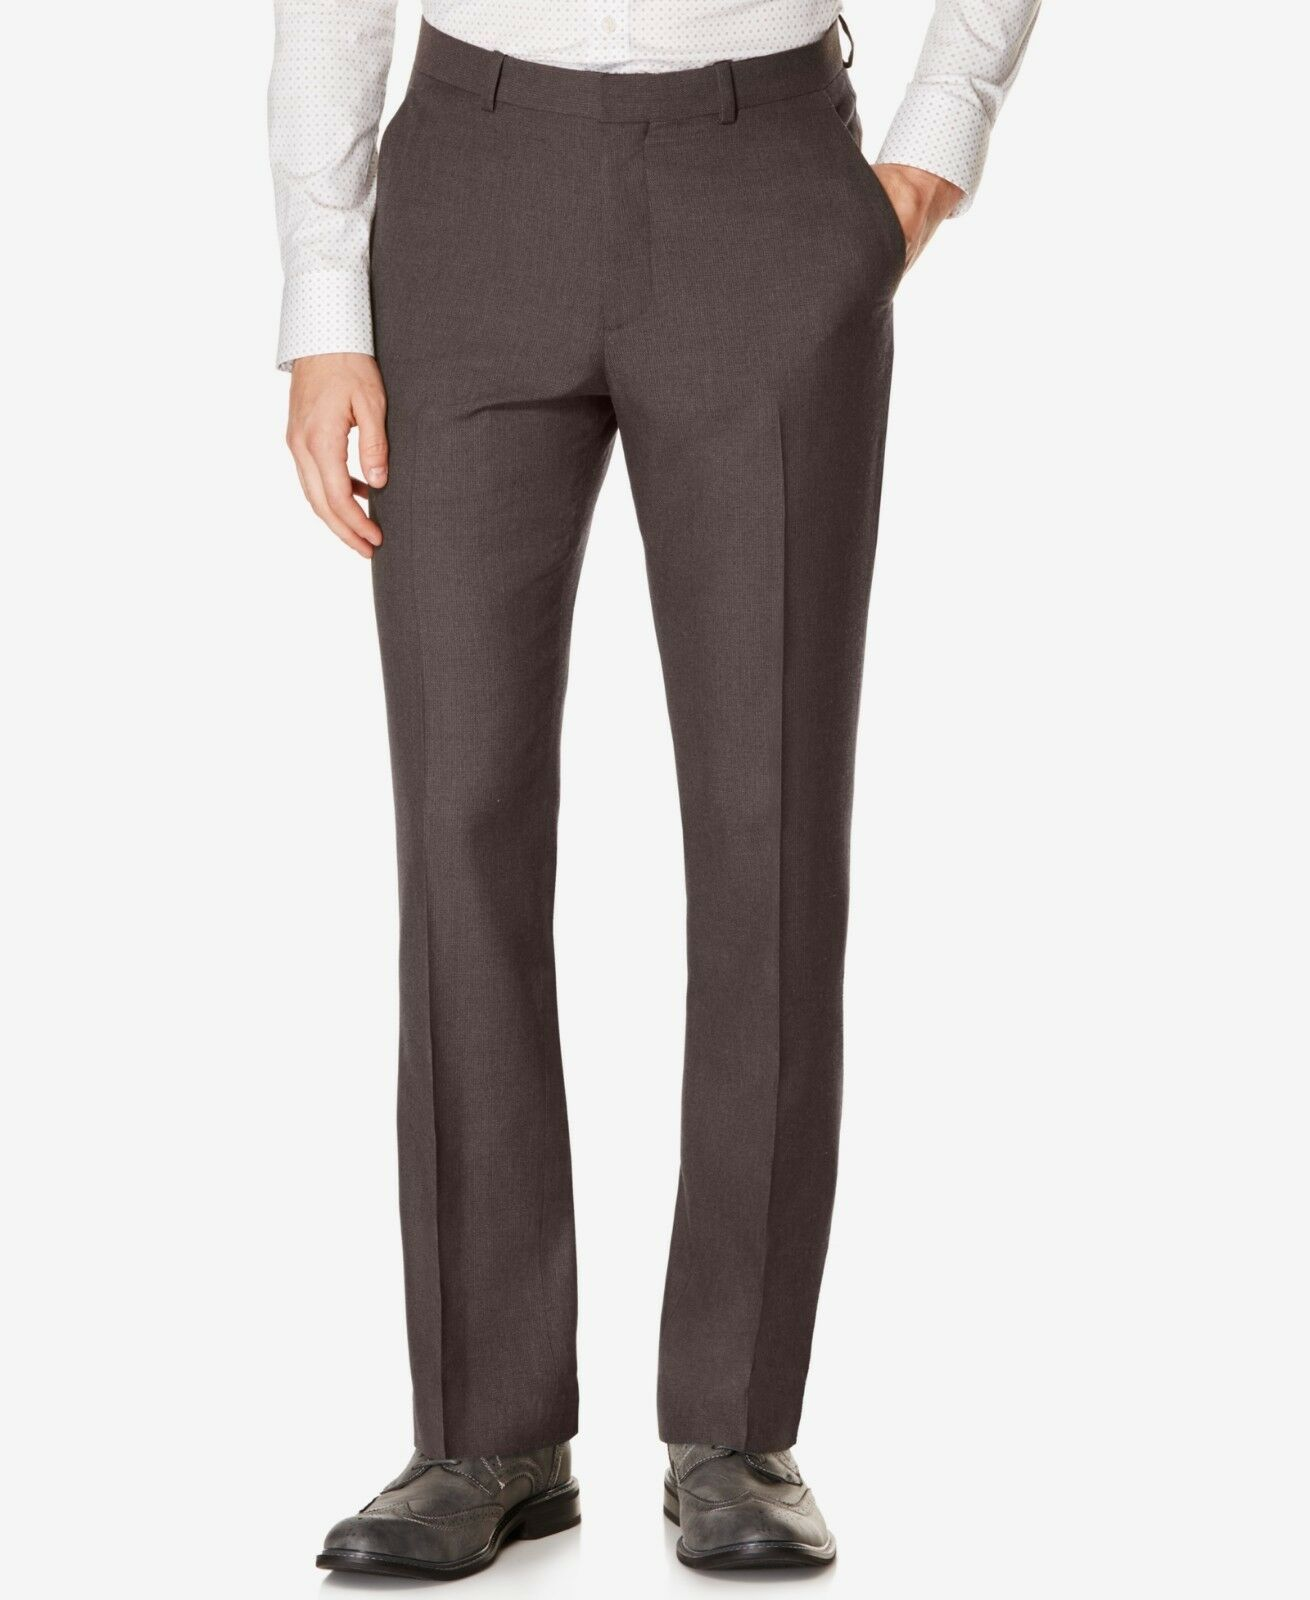 PERRY ELLIS PORTFOLIO men BROWN FLAT FRONT SLIM FIT DRESS PANTS 30 W 32 L